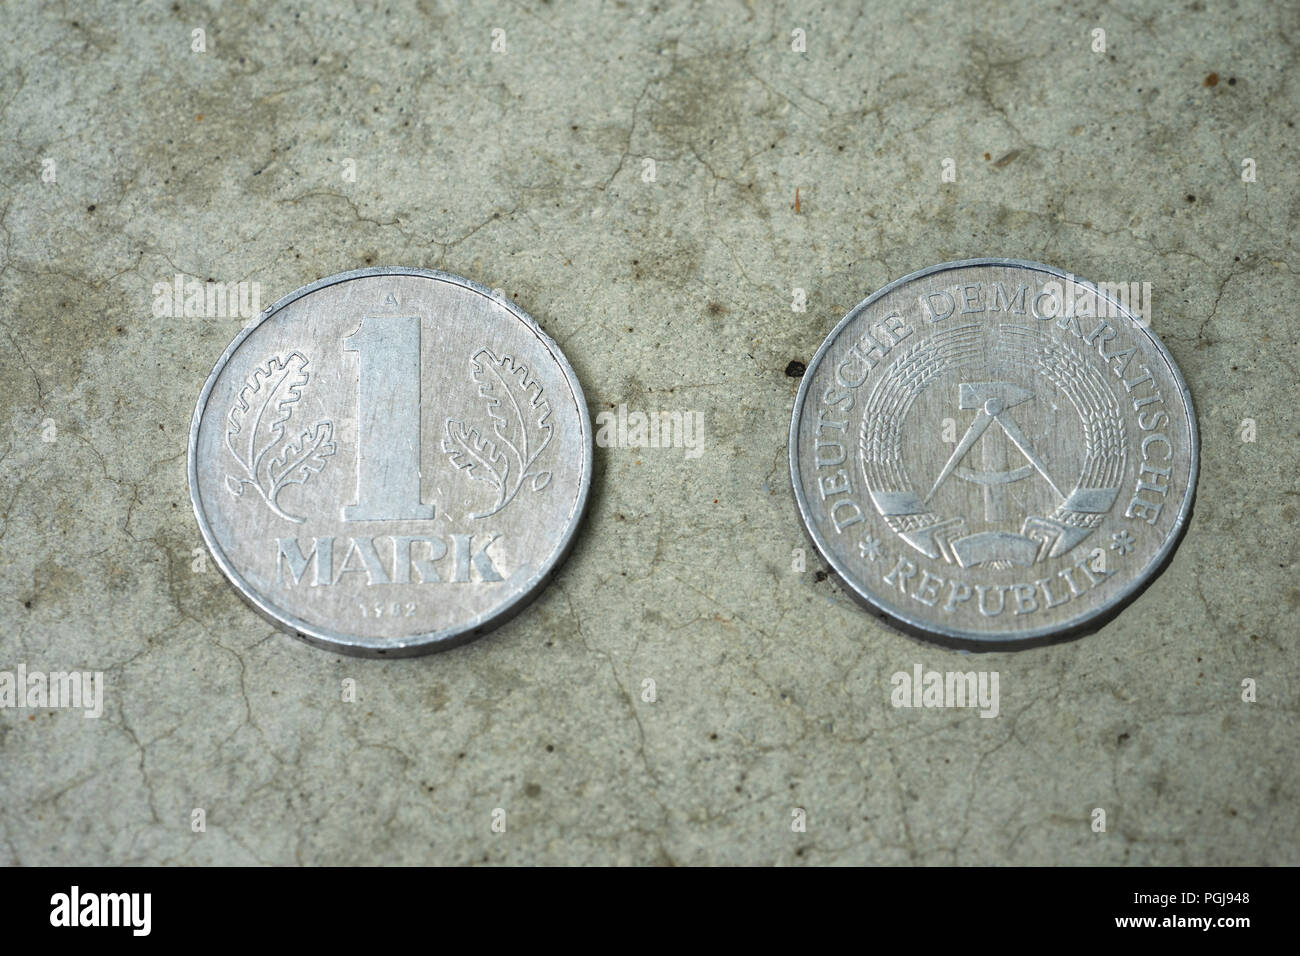 Front and back of a disused East German GDR one Mark coin - Stock Image